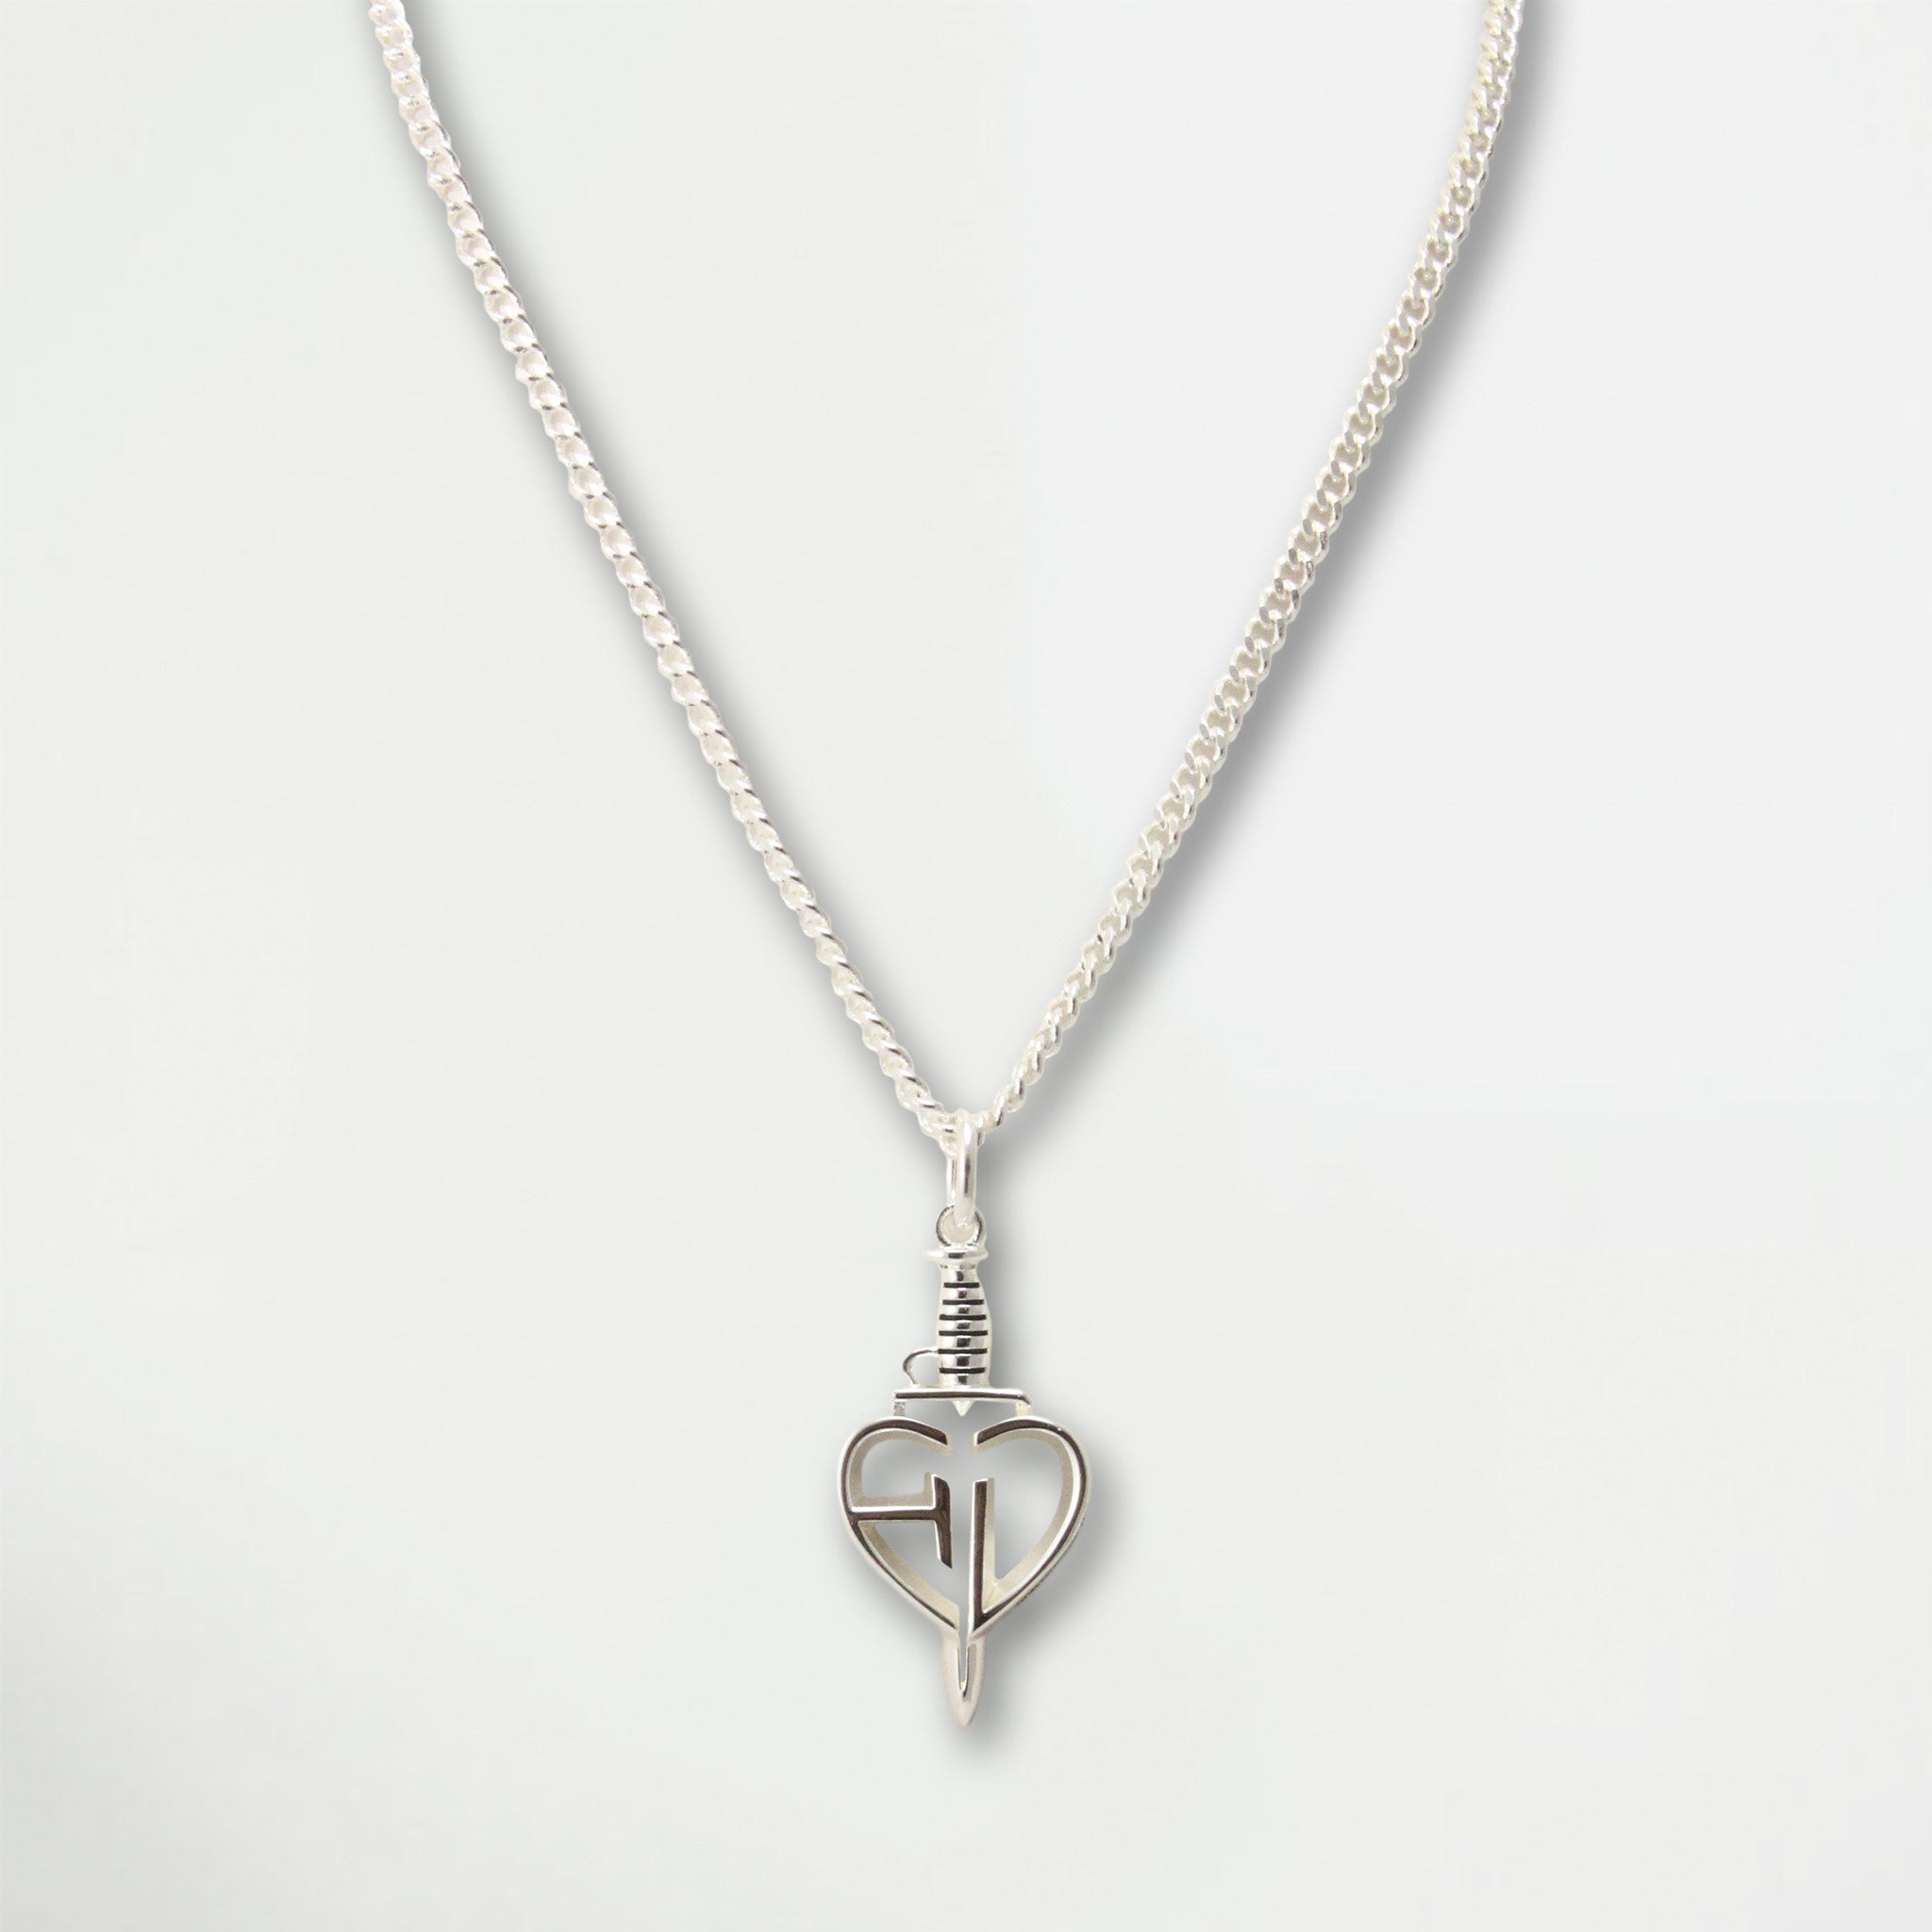 Hart N Dagger Pendant Necklace